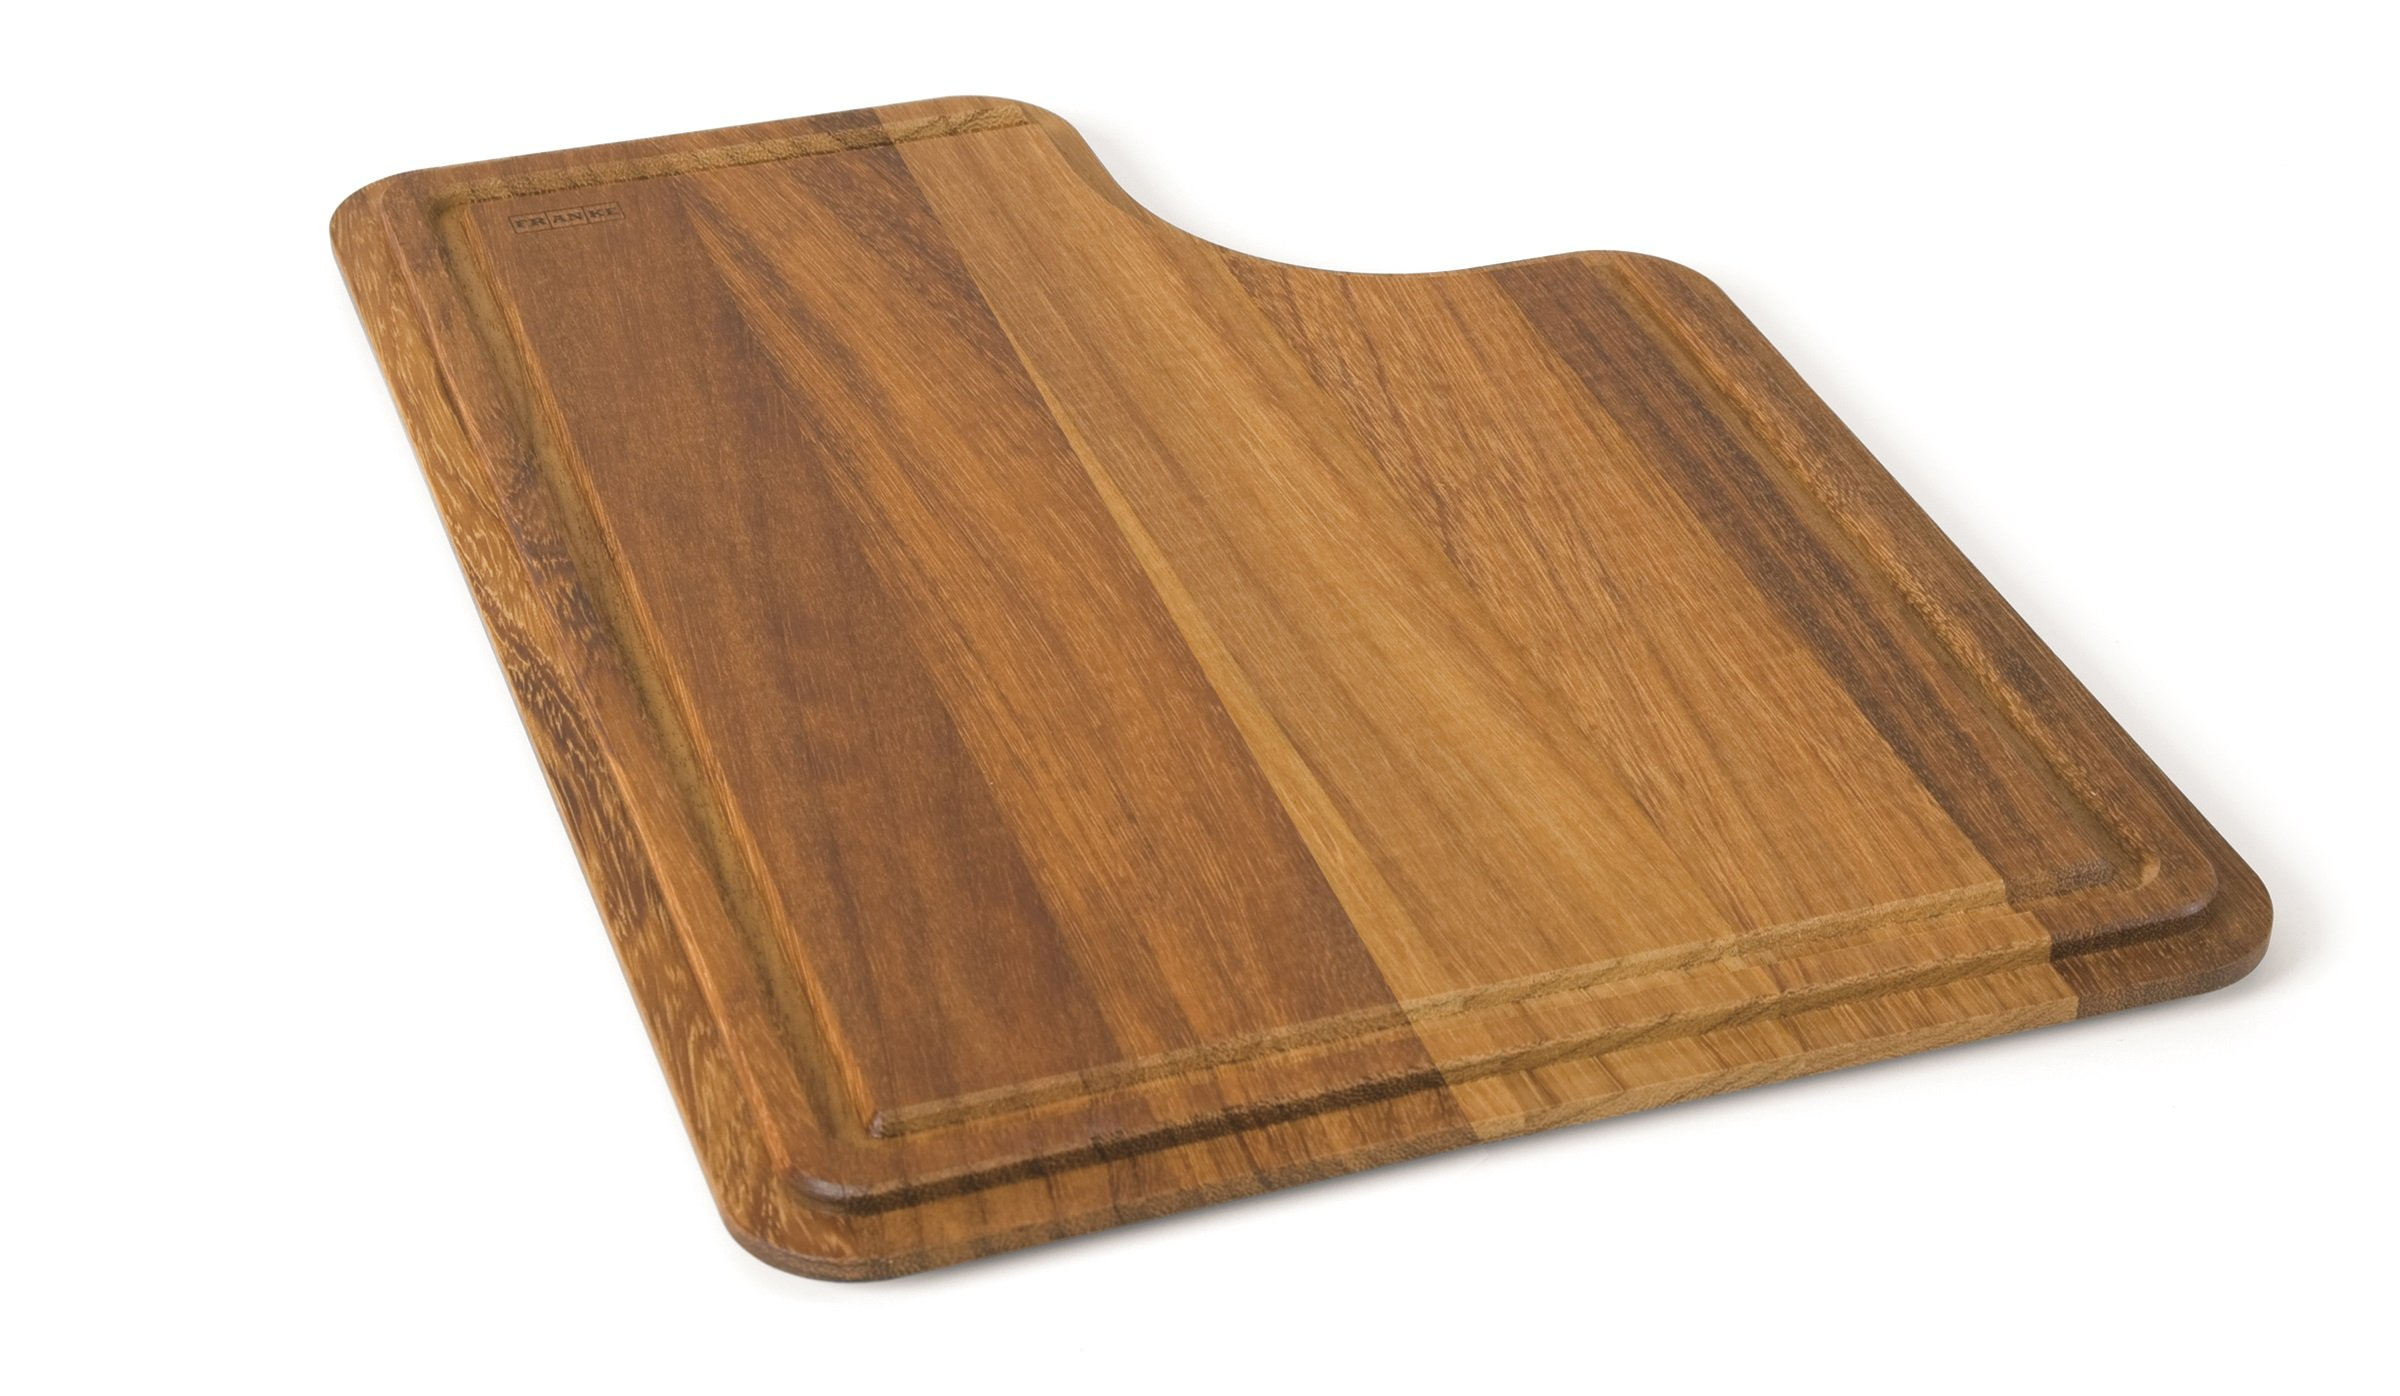 Franke PS12-40S Professional Series Cutting Board with Cutout, Wood by Franke